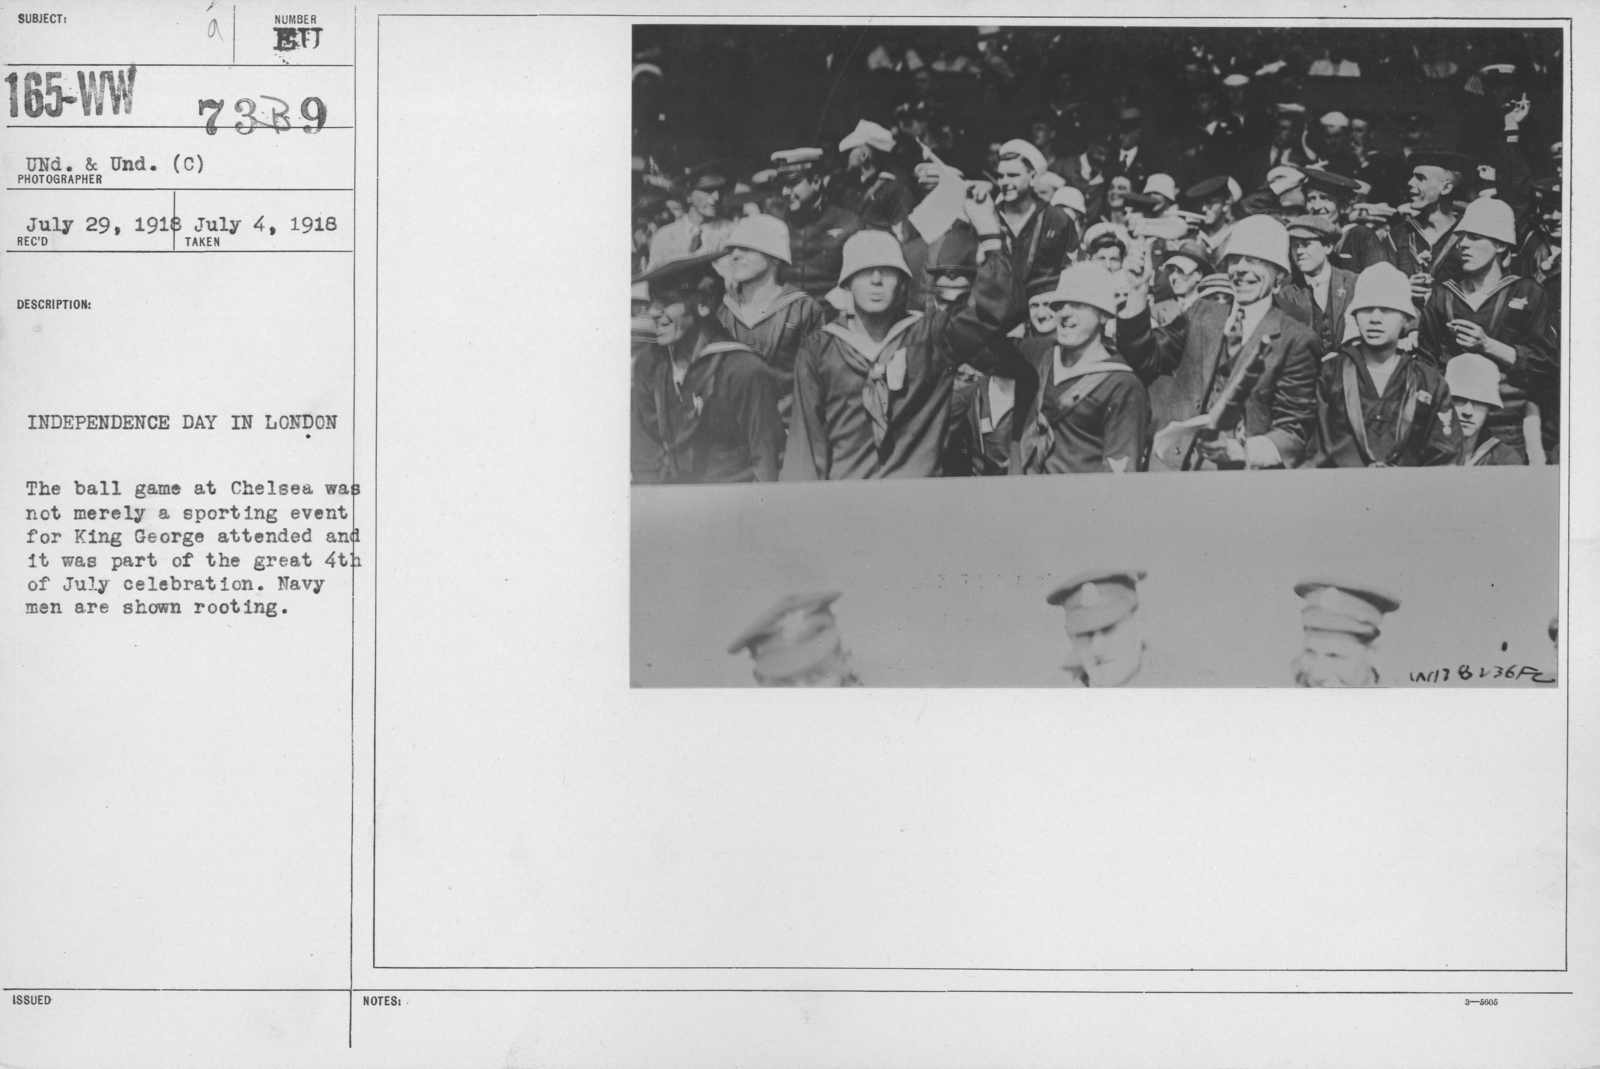 Ceremonies - England, Italy - Independence Day in London. The ball game at Chelsea was not merely a sporting event for King George attended and it was part of the great 4th of July celebration. Navy men are shown rooting